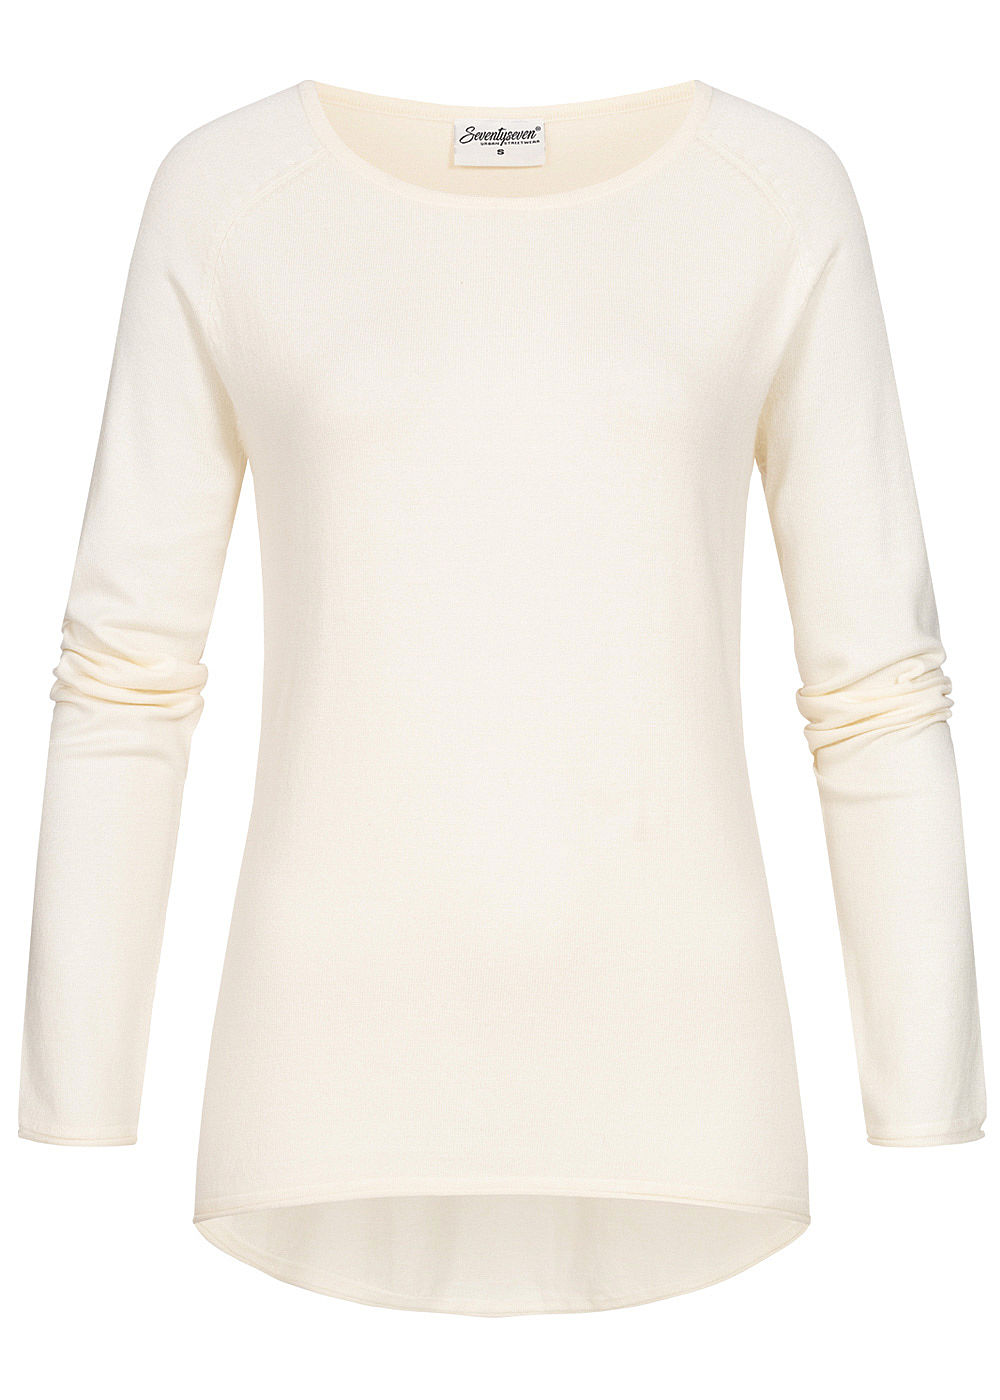 Seventyseven Lifestyle Damen Soft Touch Pullover ecru off weiss - Art.-Nr.: 19098079